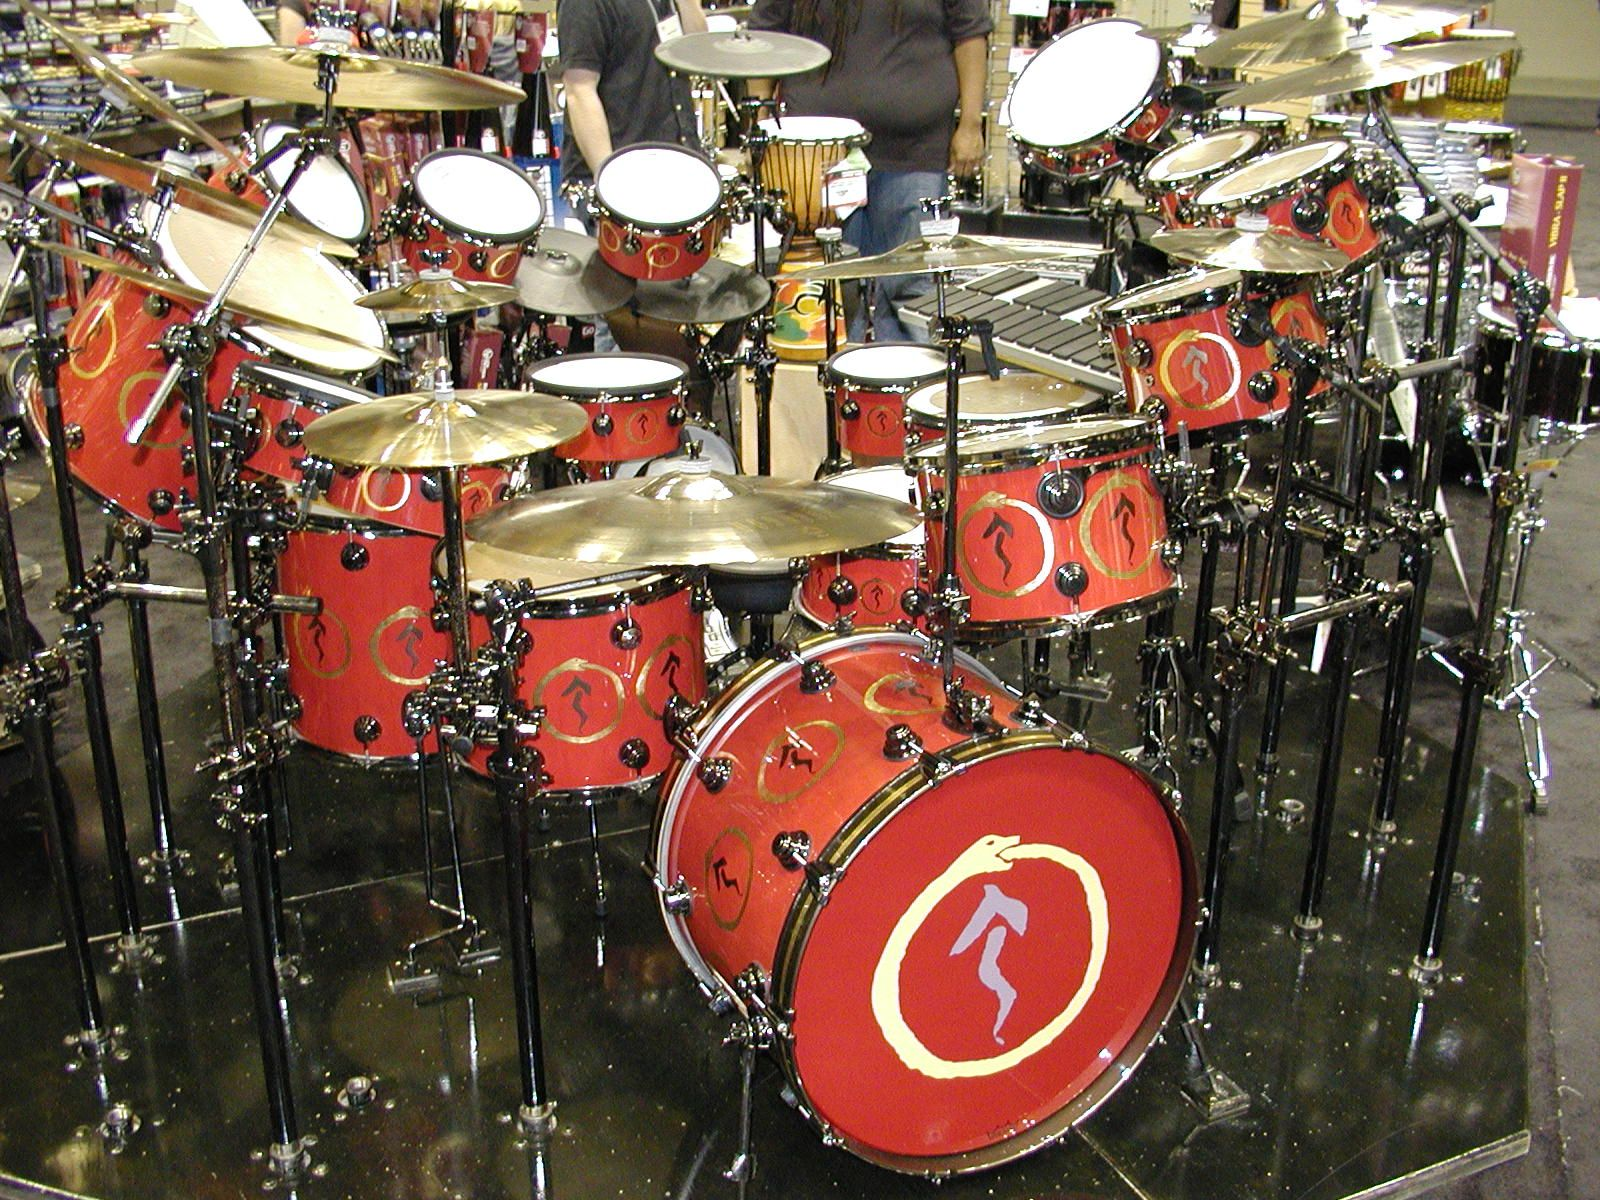 Neil Peart Drum Kit   Note   This site is not affiliated with Neil     Neil Peart Drum Kit   Note   This site is not affiliated with Neil Peart or  Rush